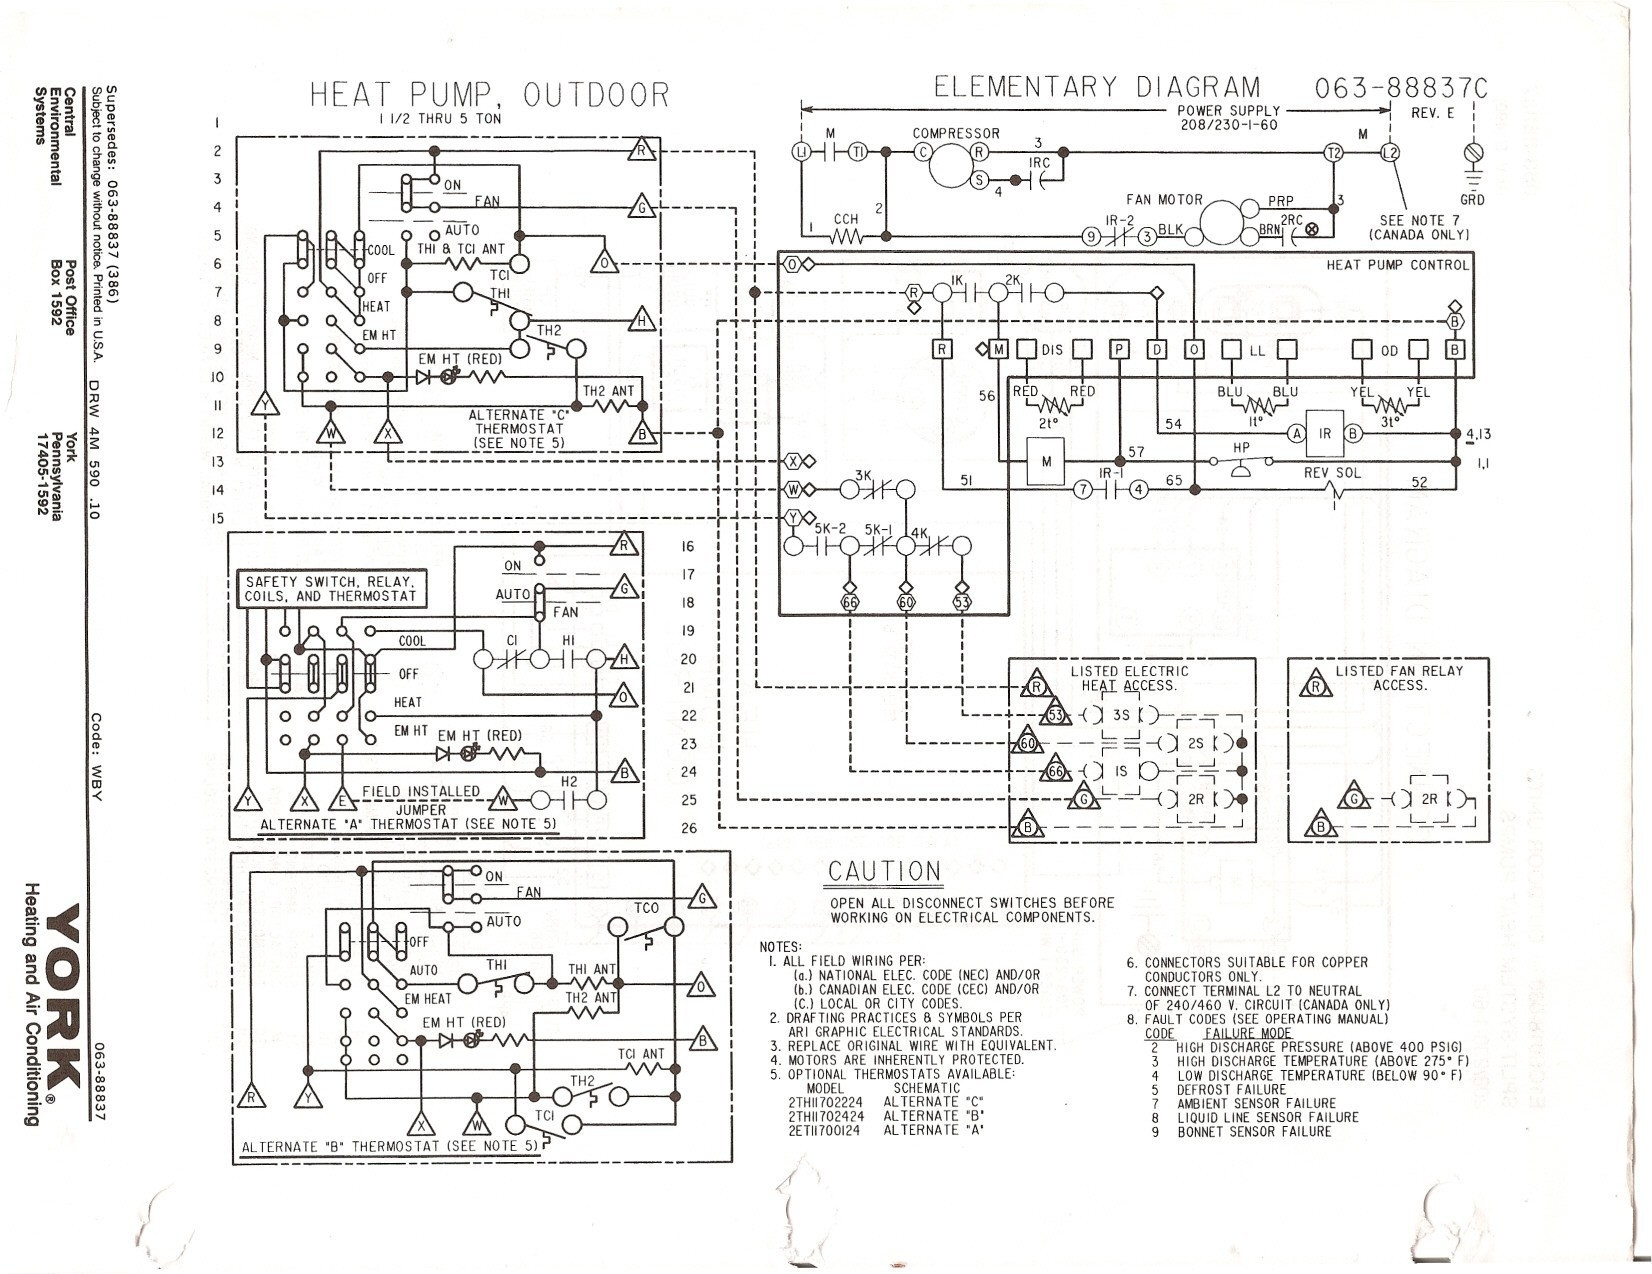 goodman ac unit wiring diagram wiring diagramgoodman ac wiring wiring diagramgoodman ac unit wiring diagram free wiring diagram